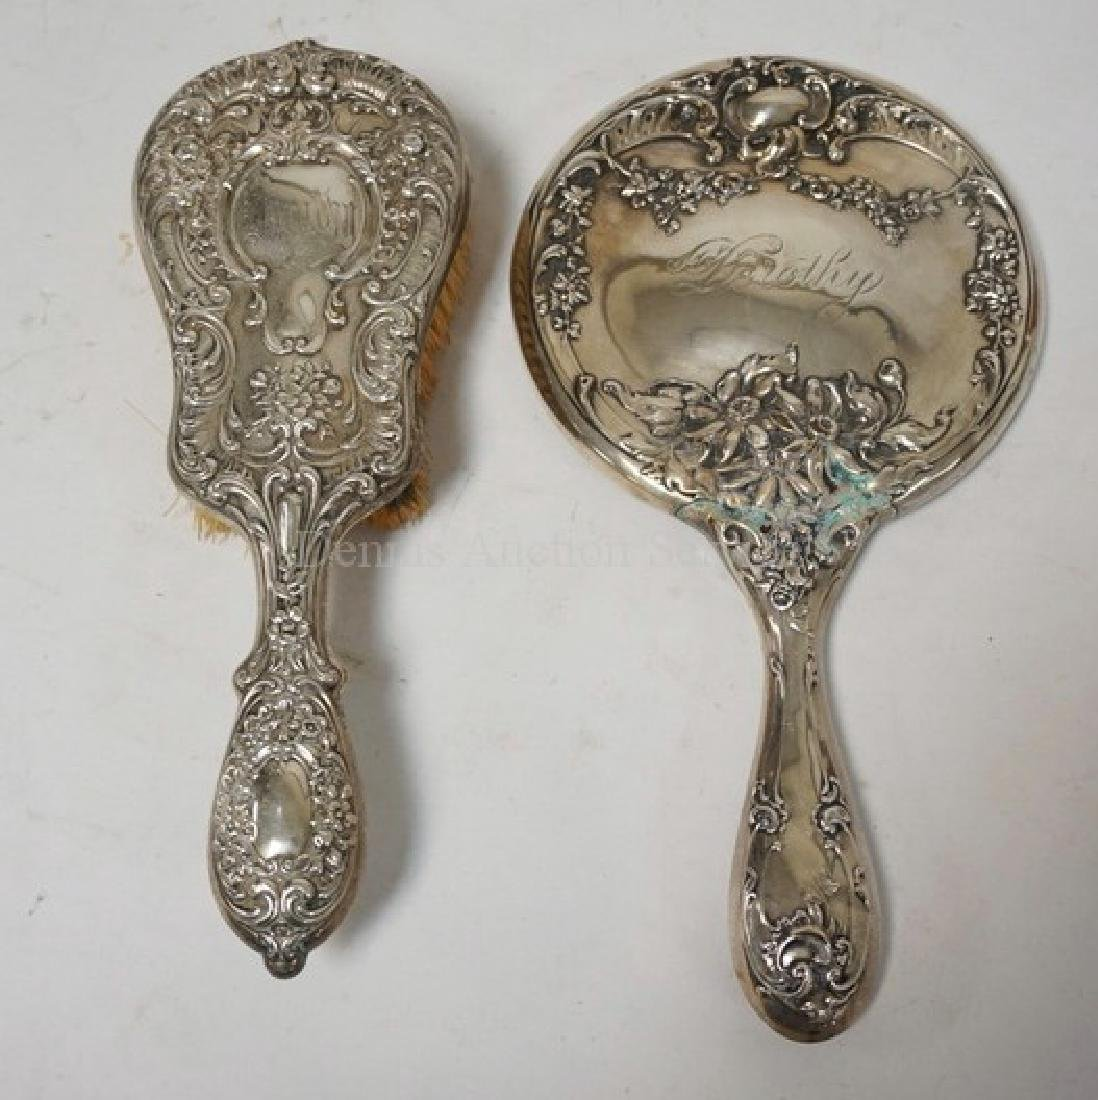 ANTIQUE STERLING SILVER MIRROR AND BRUSH (NOT